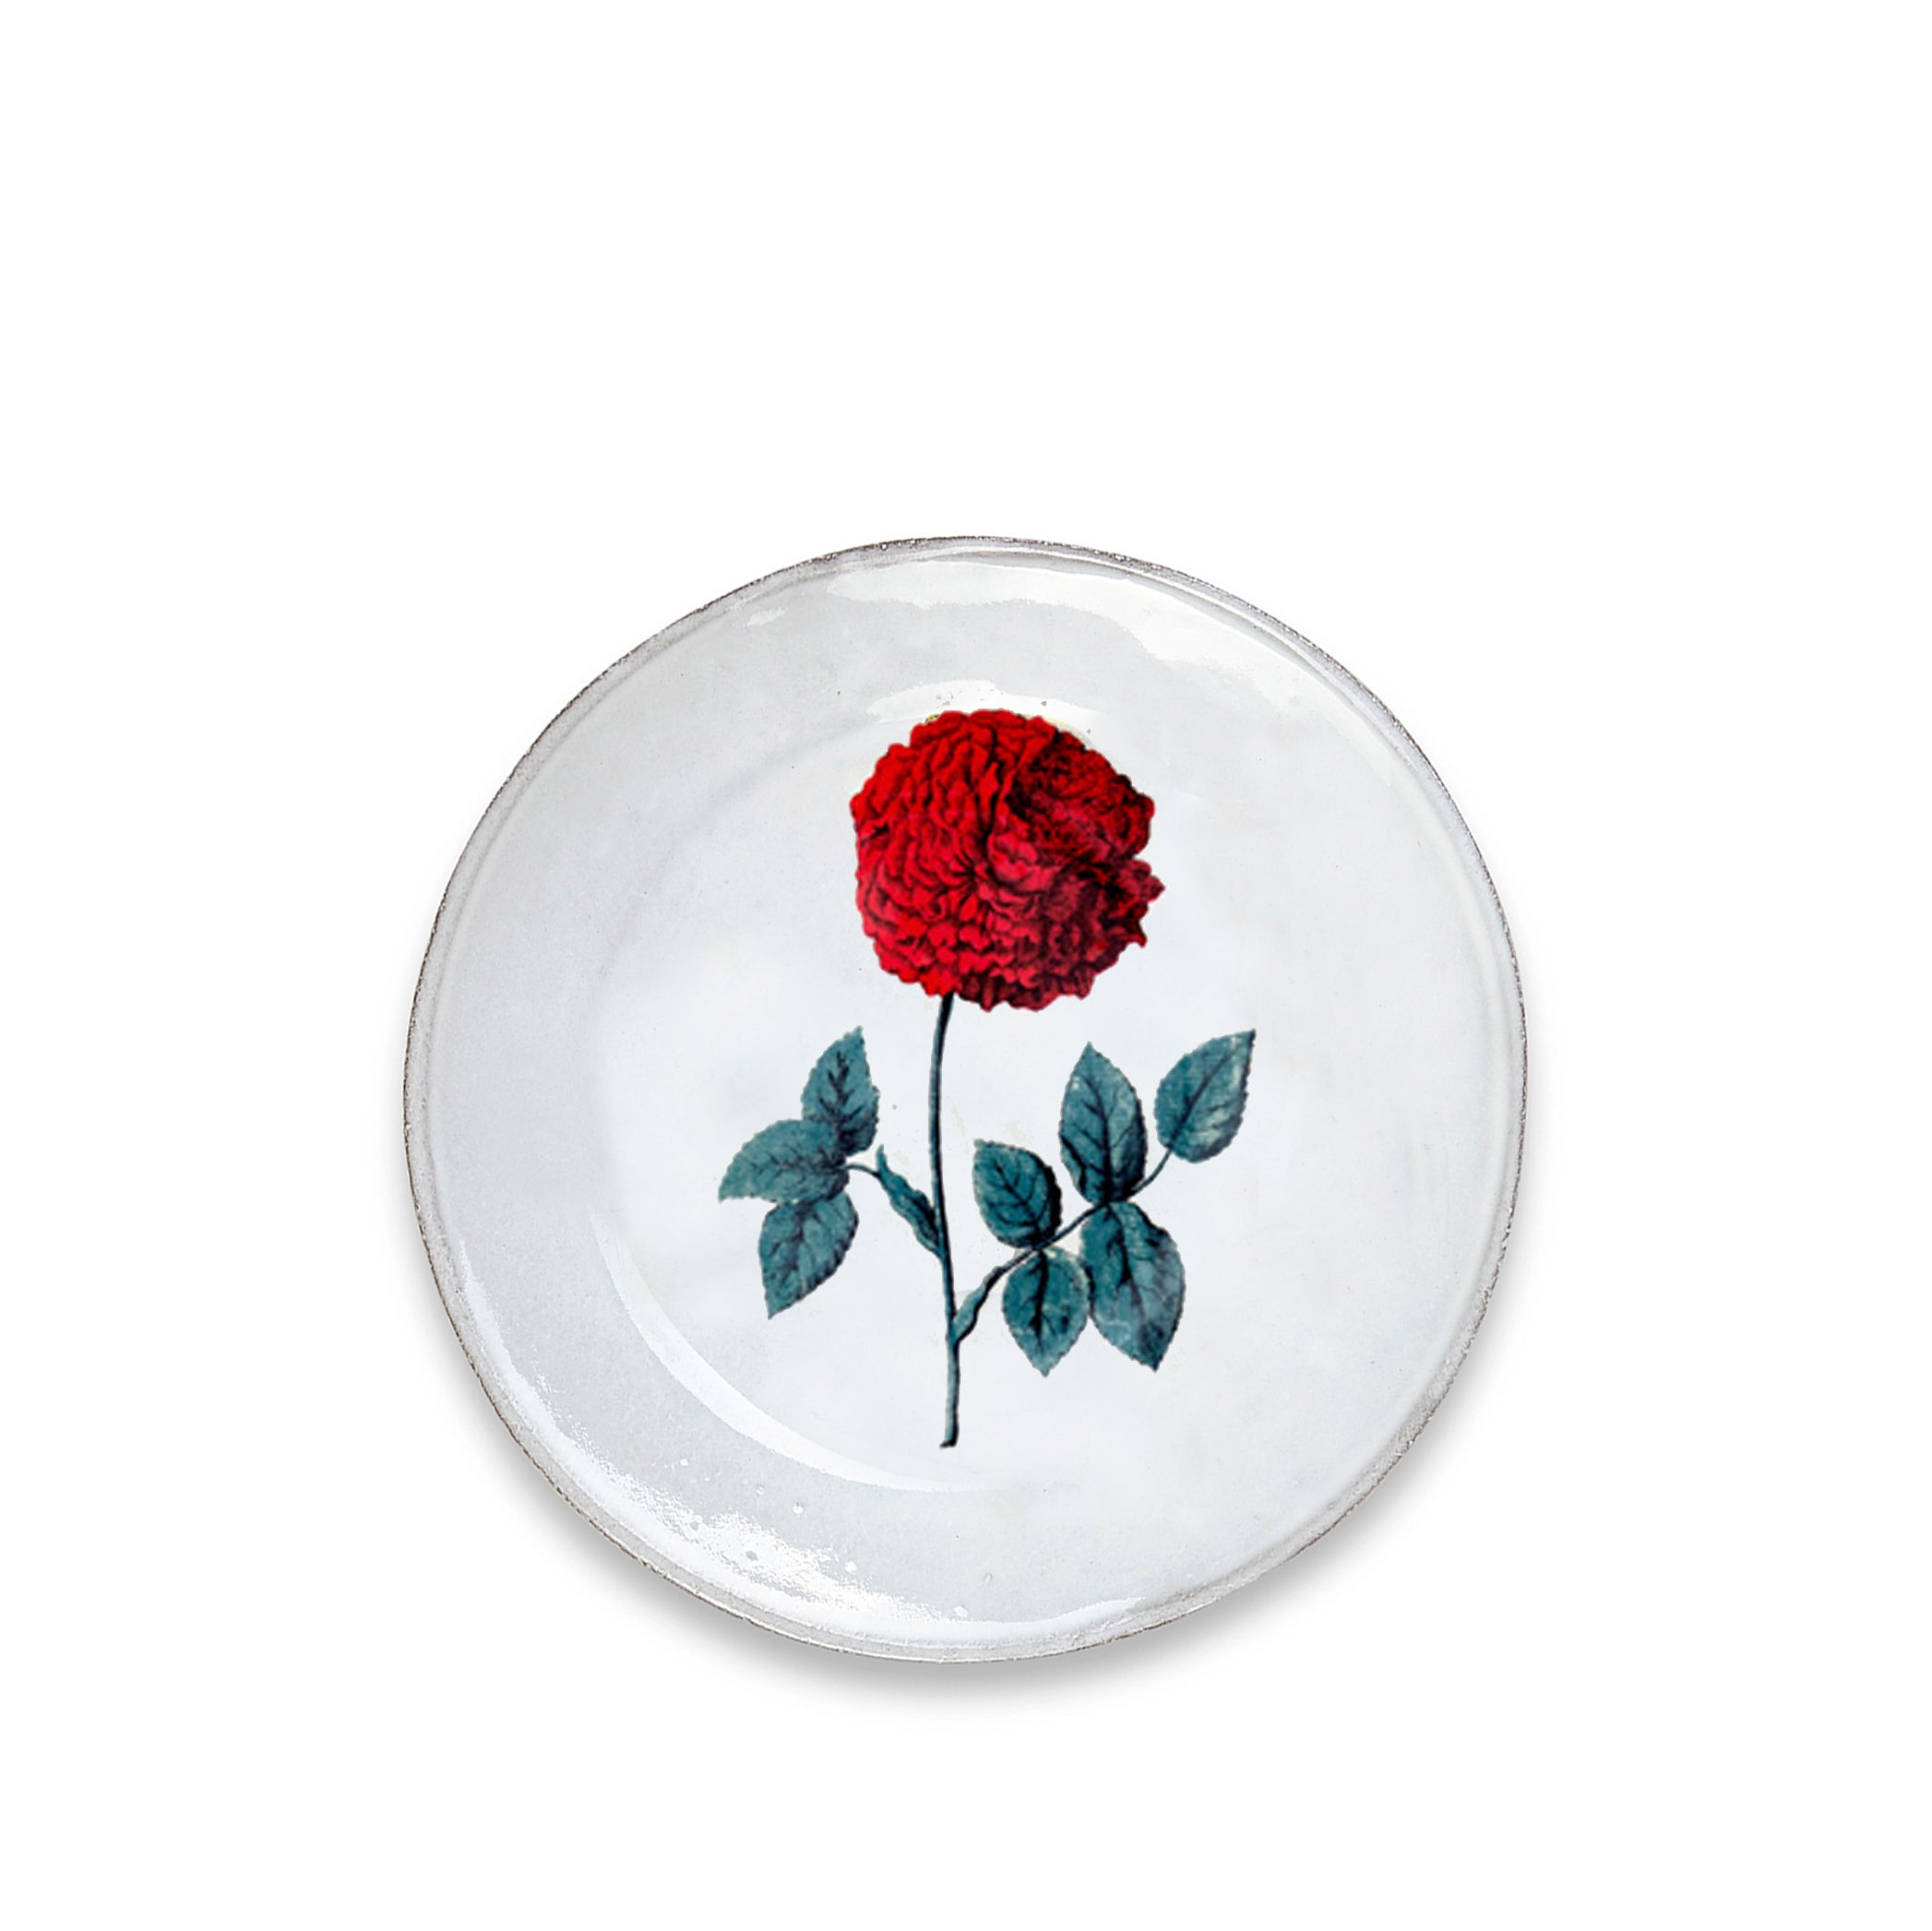 Dutch Hundred Leaved Rose Soup Plate by Astier de Villatte